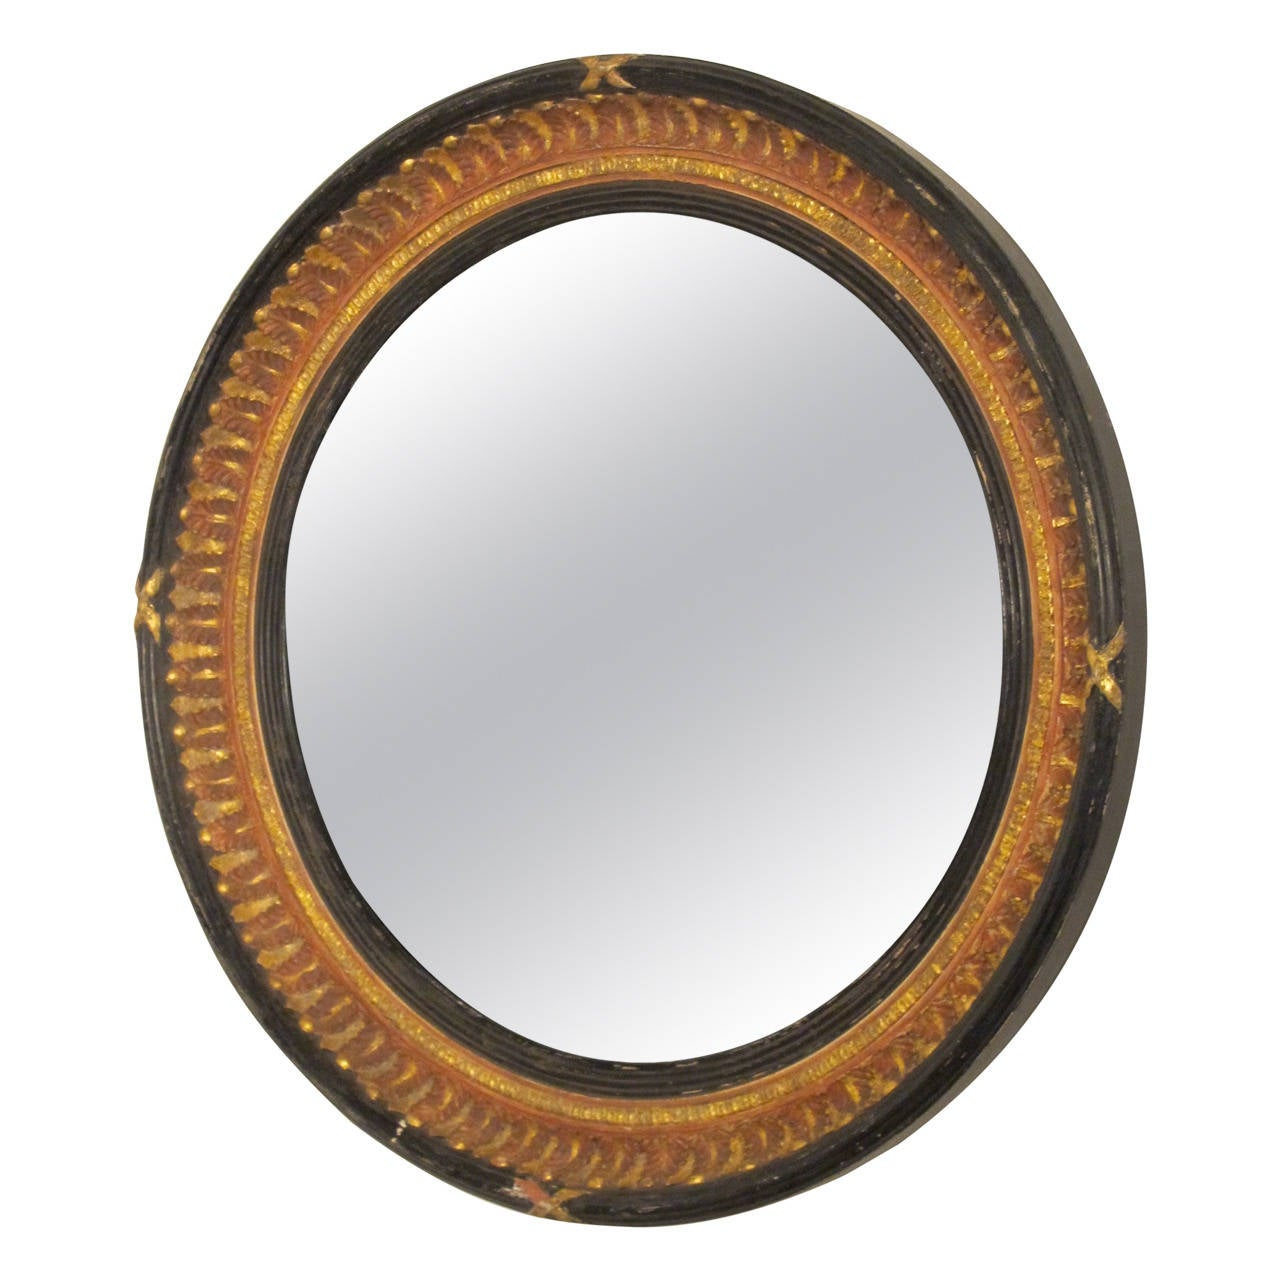 Unusual english convex mirror for sale at 1stdibs for Mirrors for sale